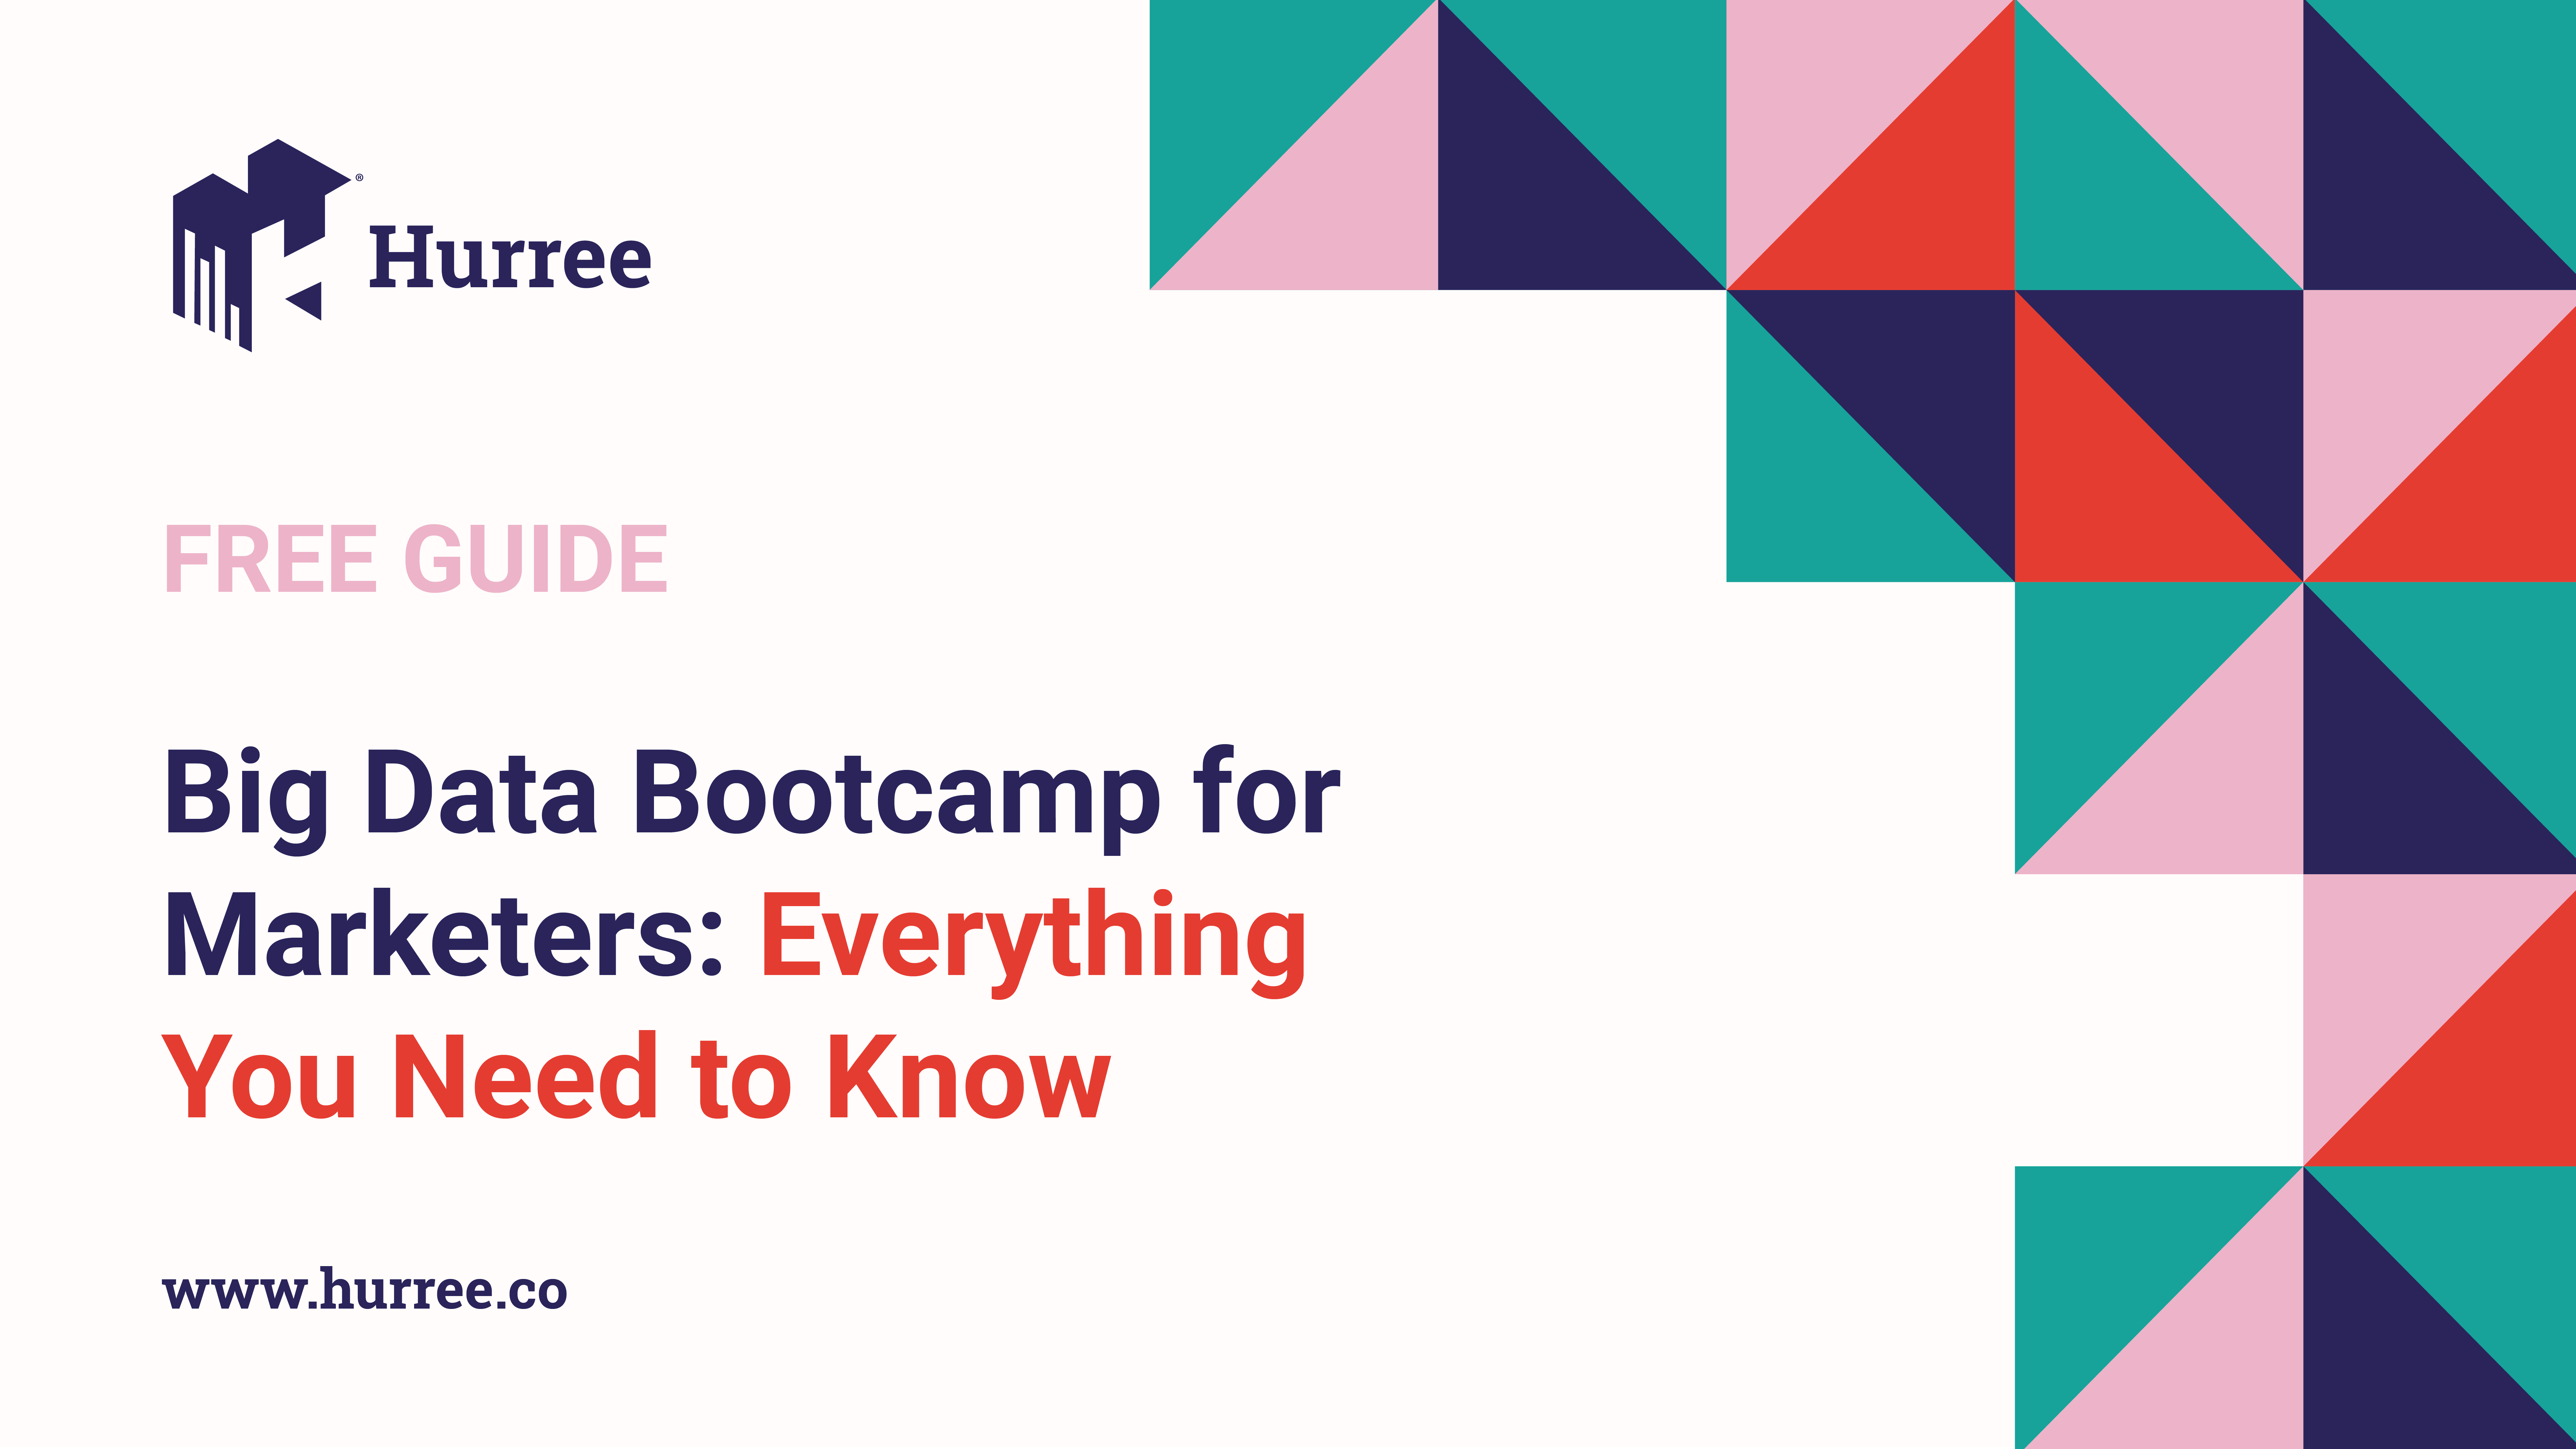 Big Data Bootcamp for Marketers guide download